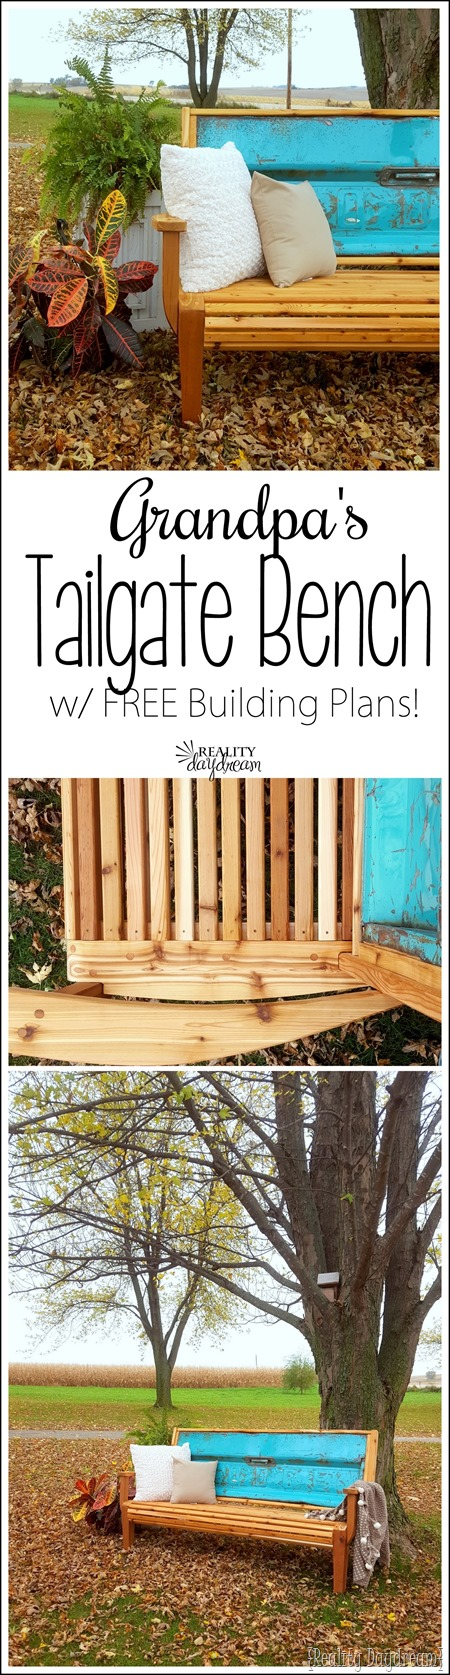 Grandpa's Tailgate Bench with FREE Building Plans!